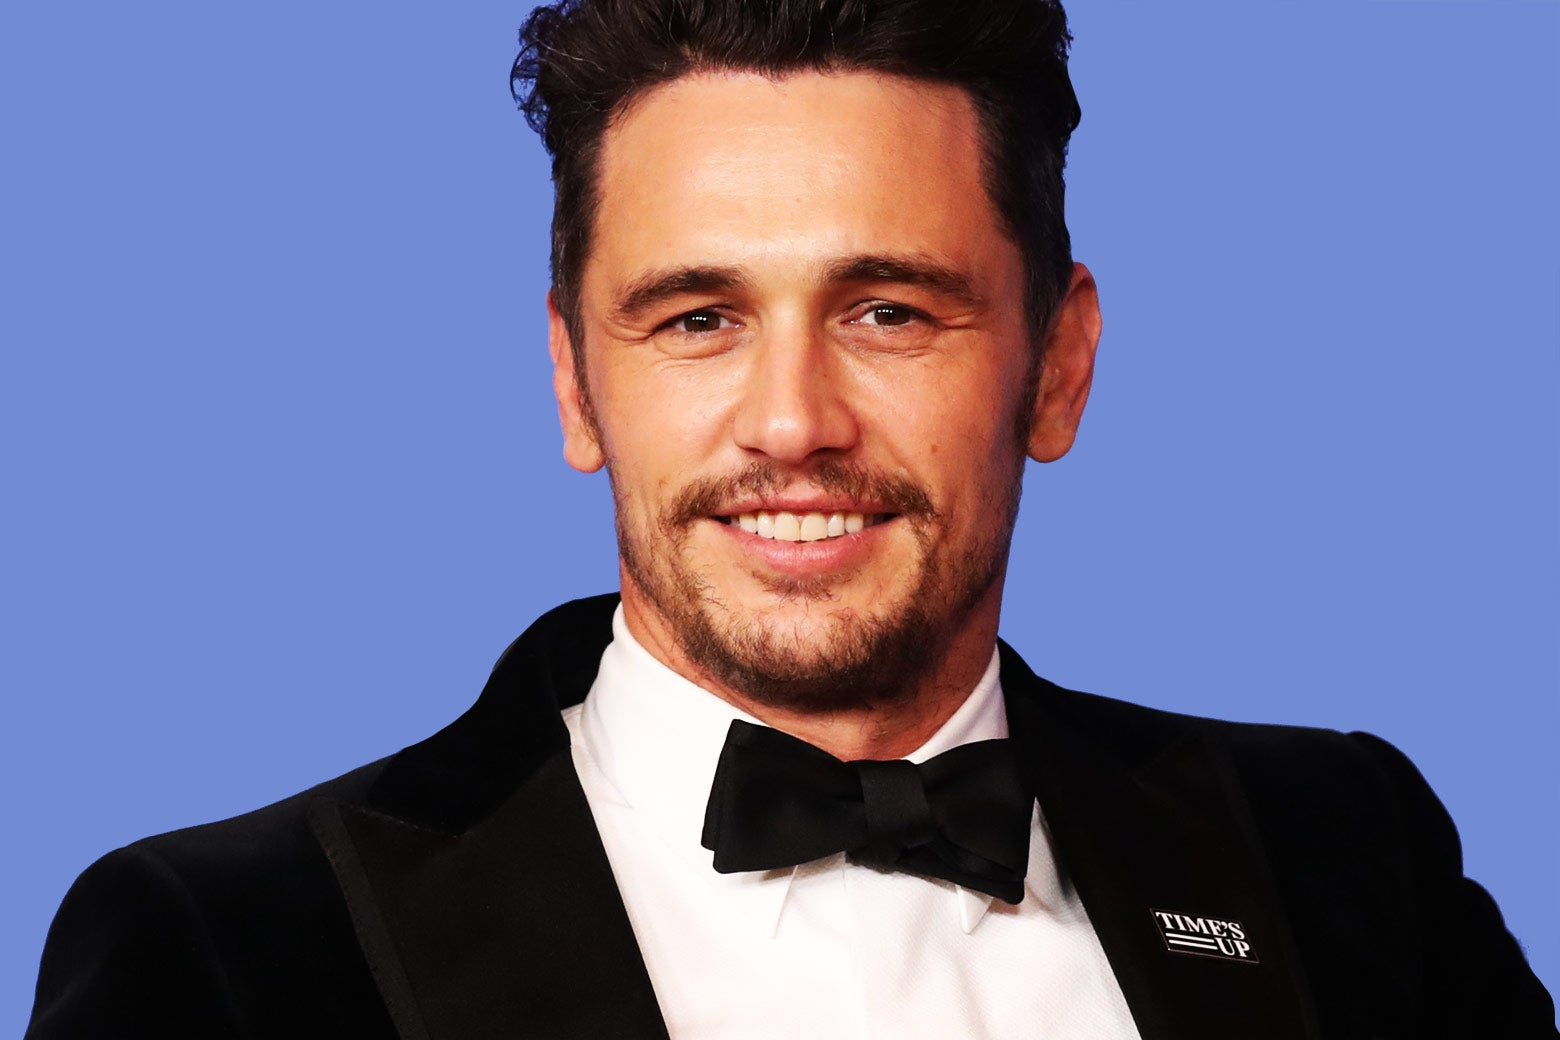 James Franco poses backstage after winning the award for Best Performance by an Actor in a Motion Picture.